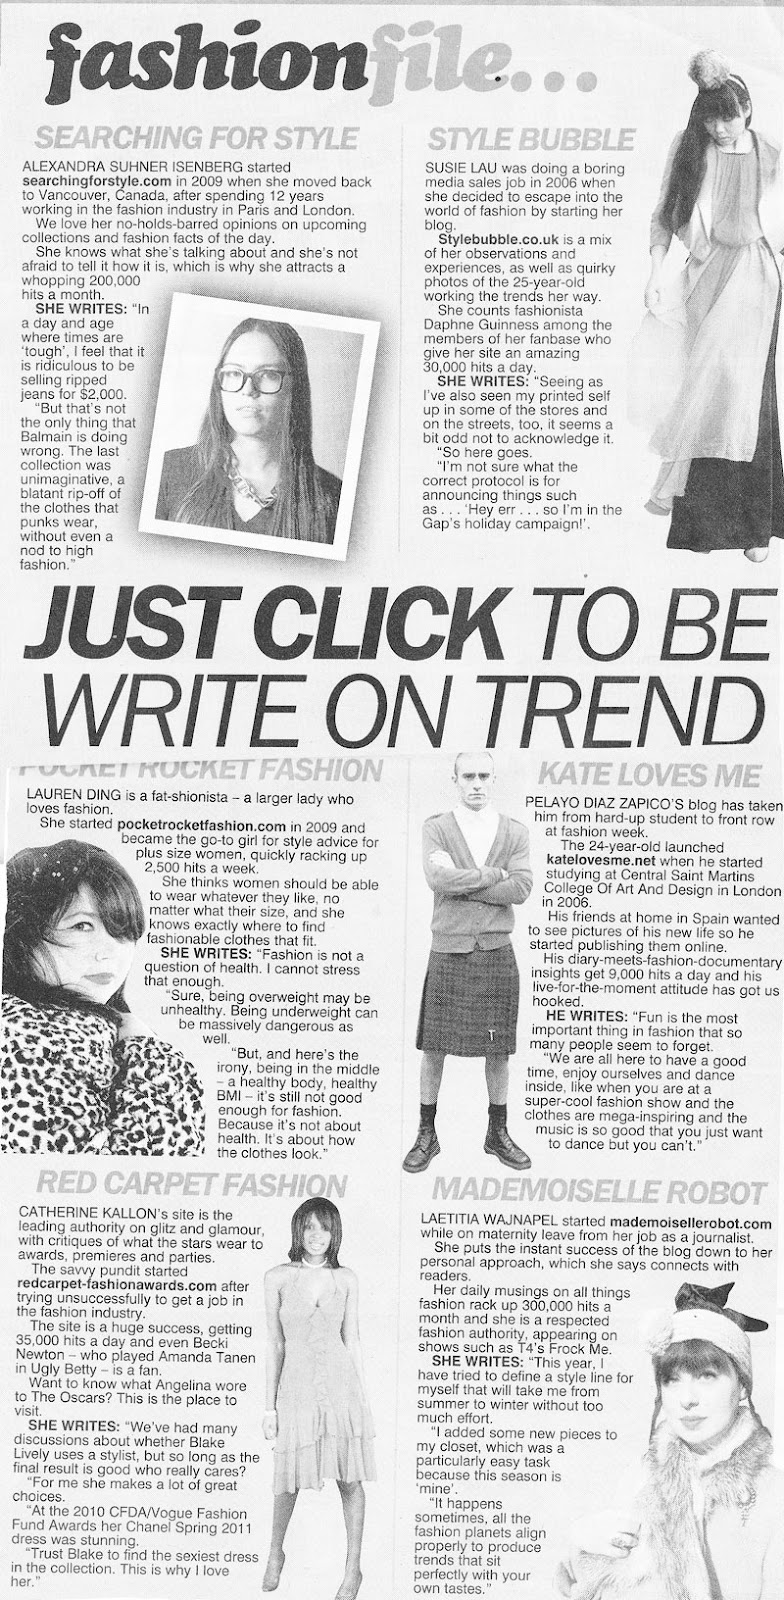 The Sun - 2011 - Just Click To Be Write On Trend